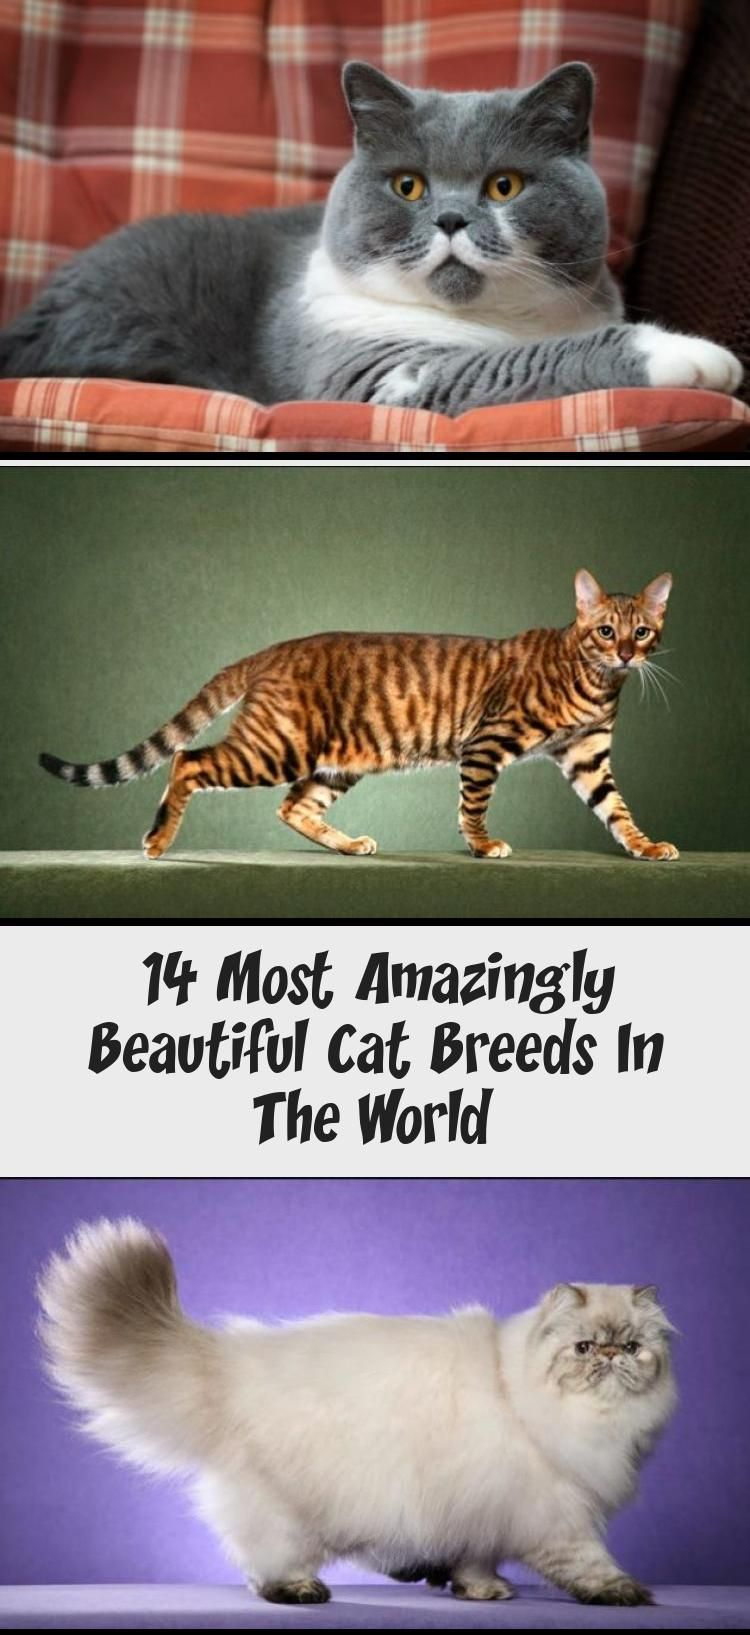 14 Most Amazingly Beautiful Cat Breeds In The World in